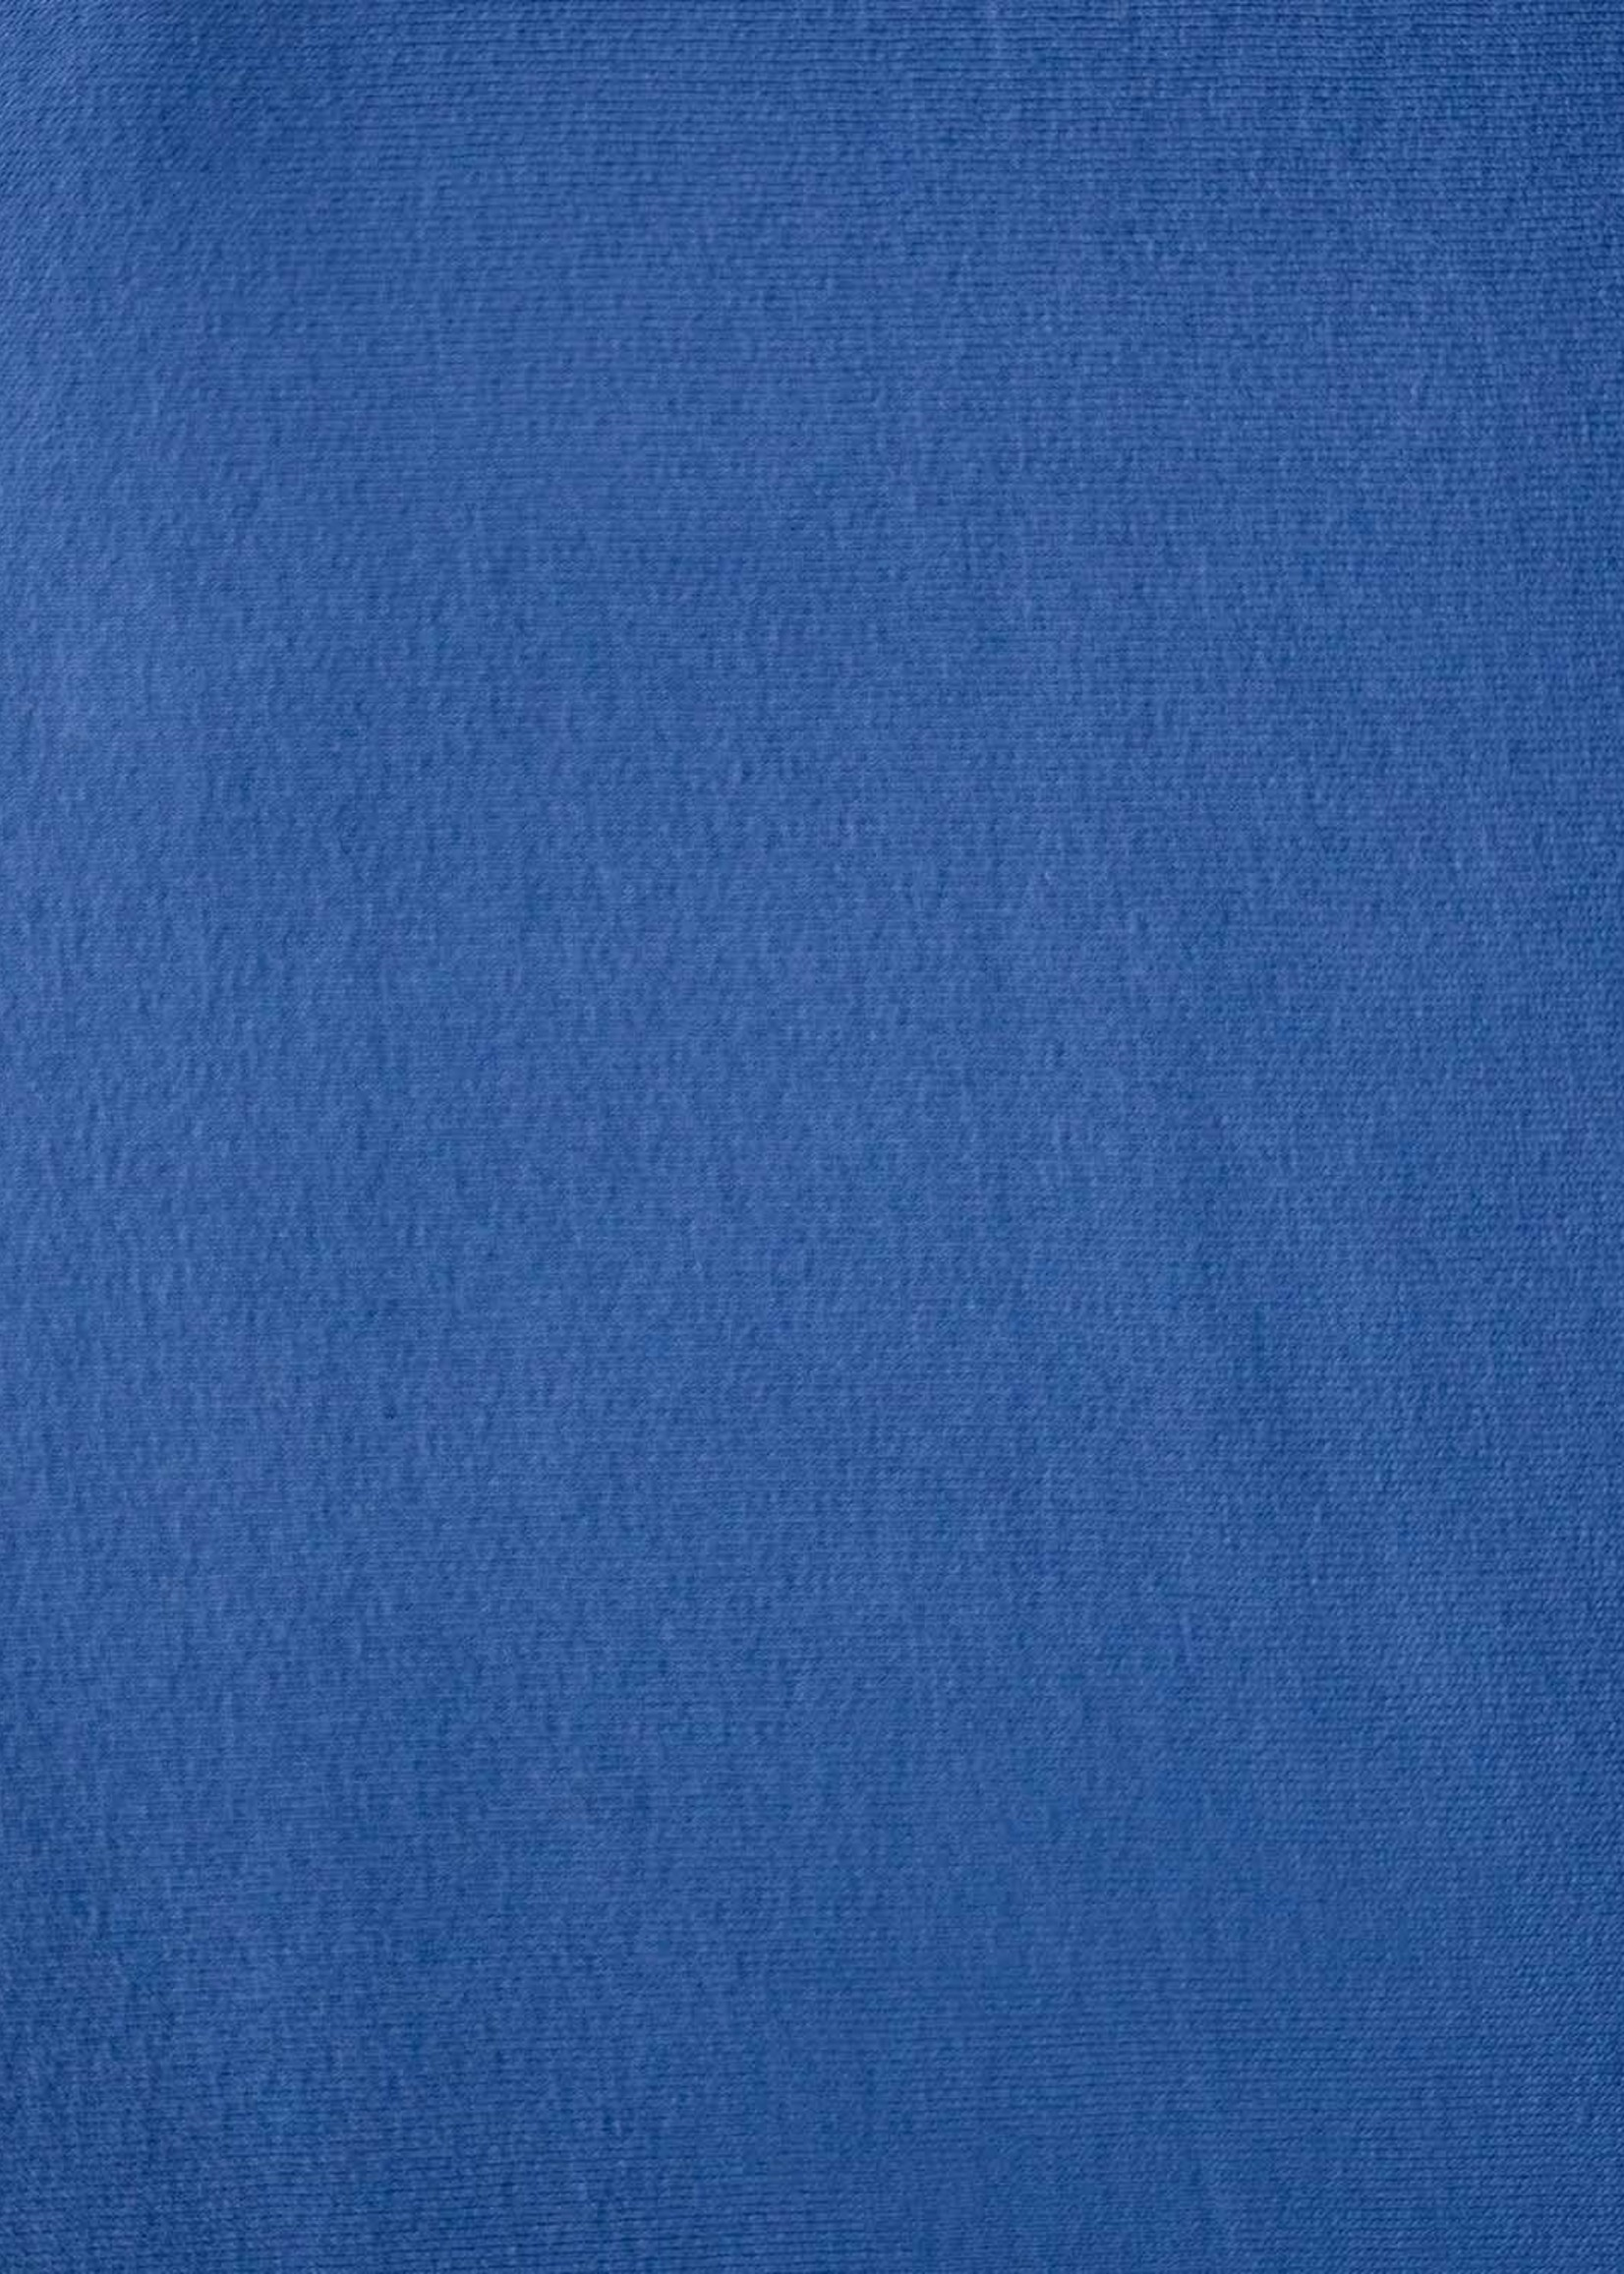 Katia Fabrics SOFT FRENCH TERRY SOLID SKYDIVER